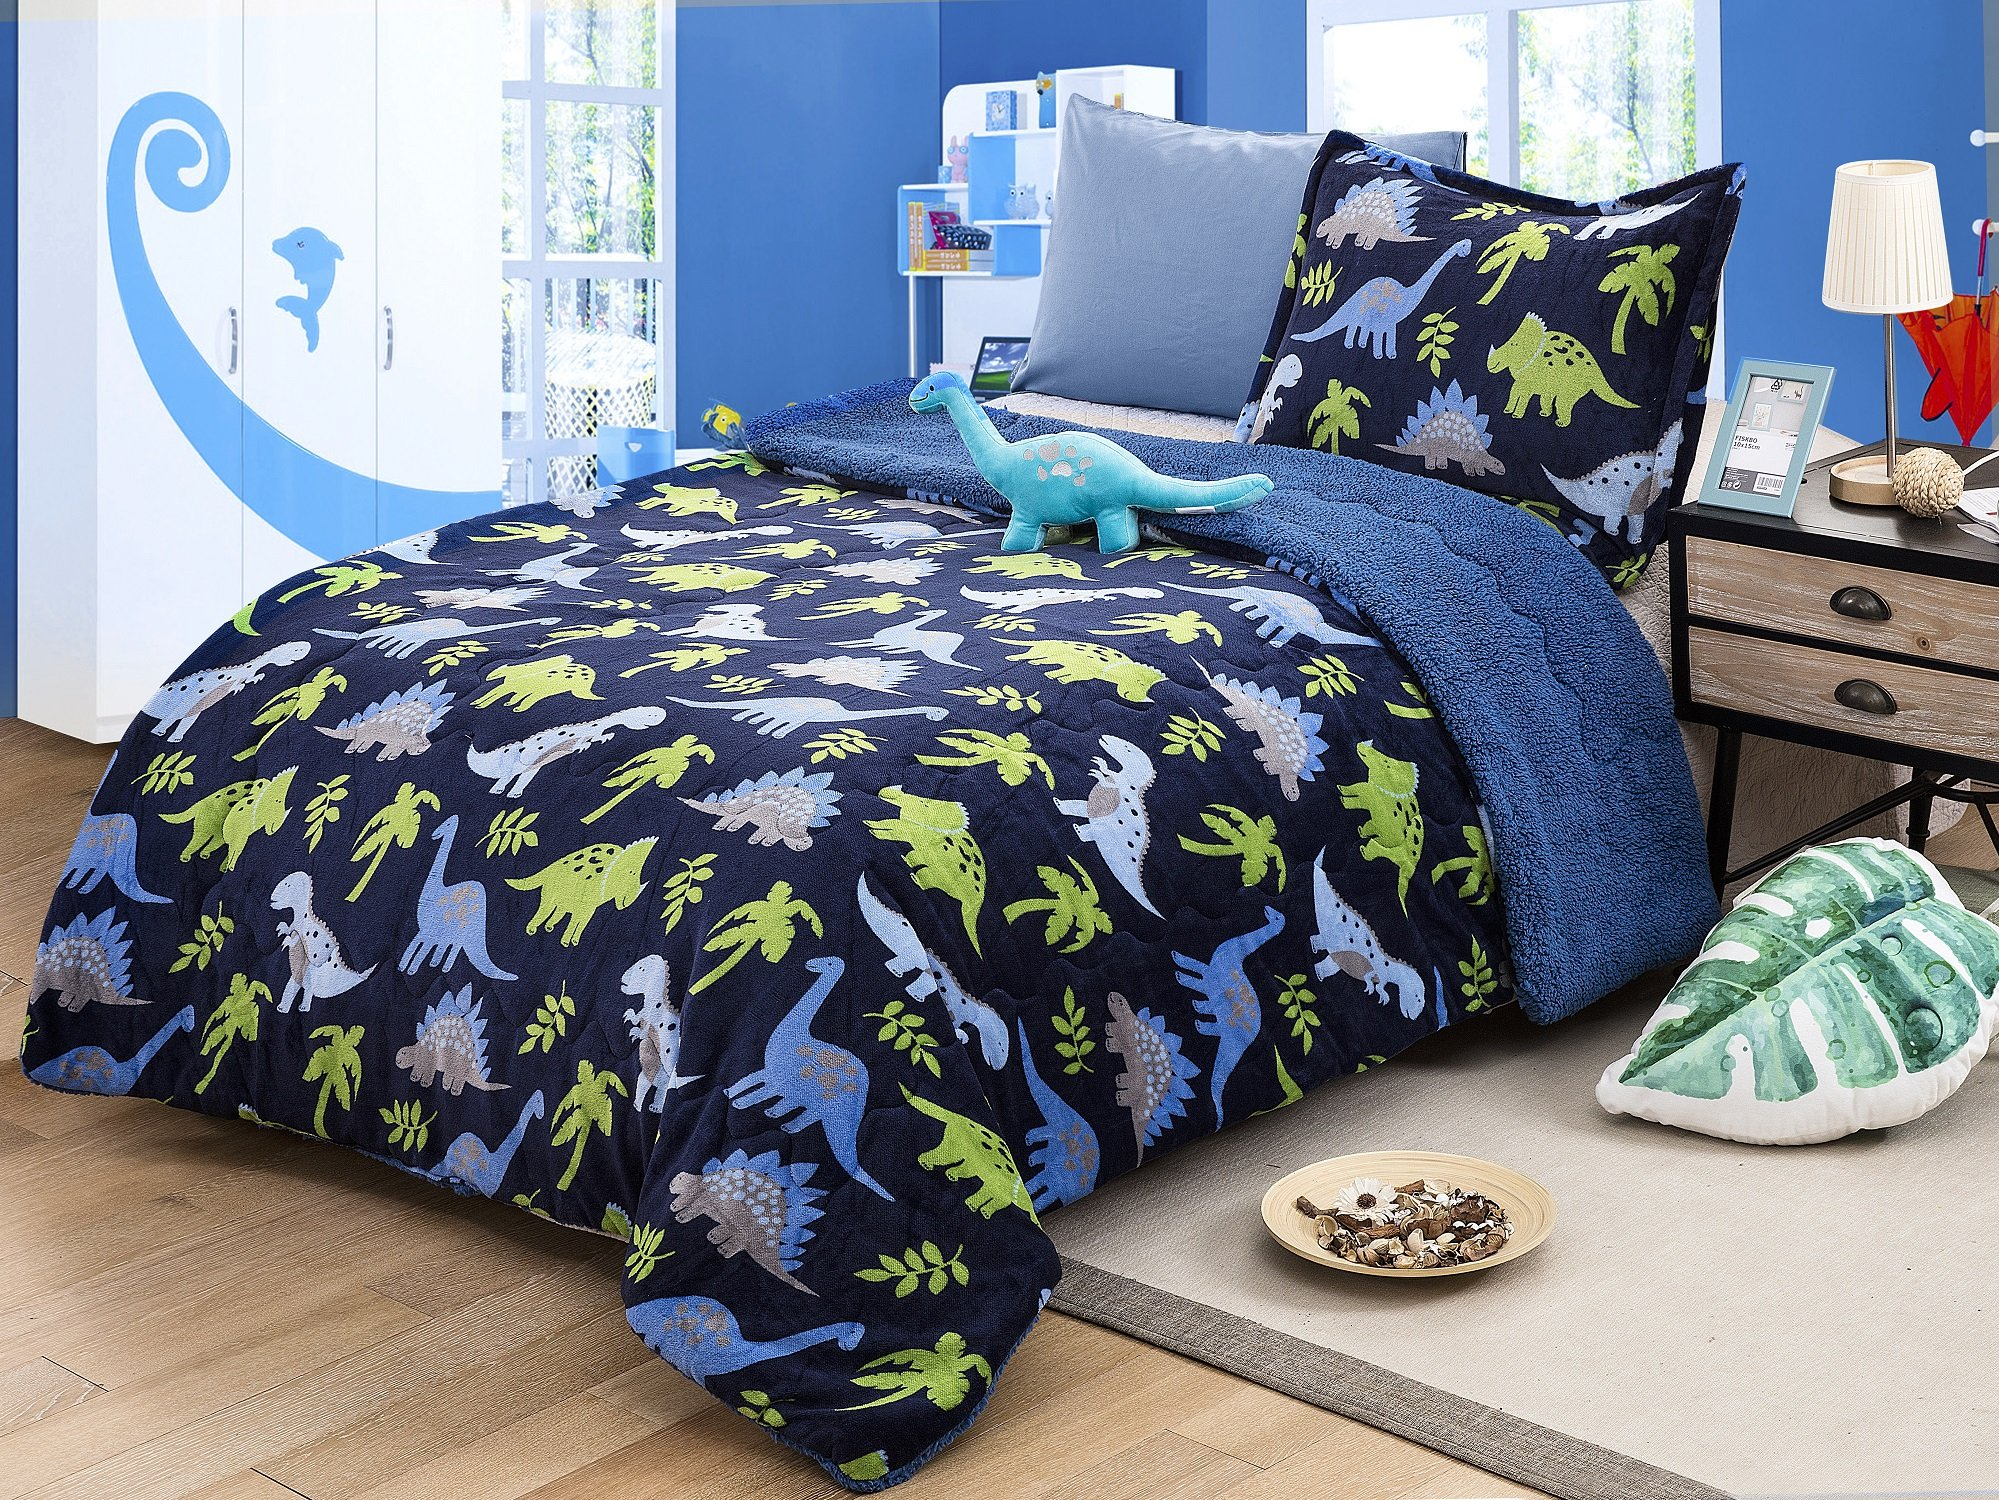 All American Collection New Super Soft and Warm 3 Piece Borrego/Sherpa Blanket with Pillow Sham and Cushion Twin Size (Dinosaur)